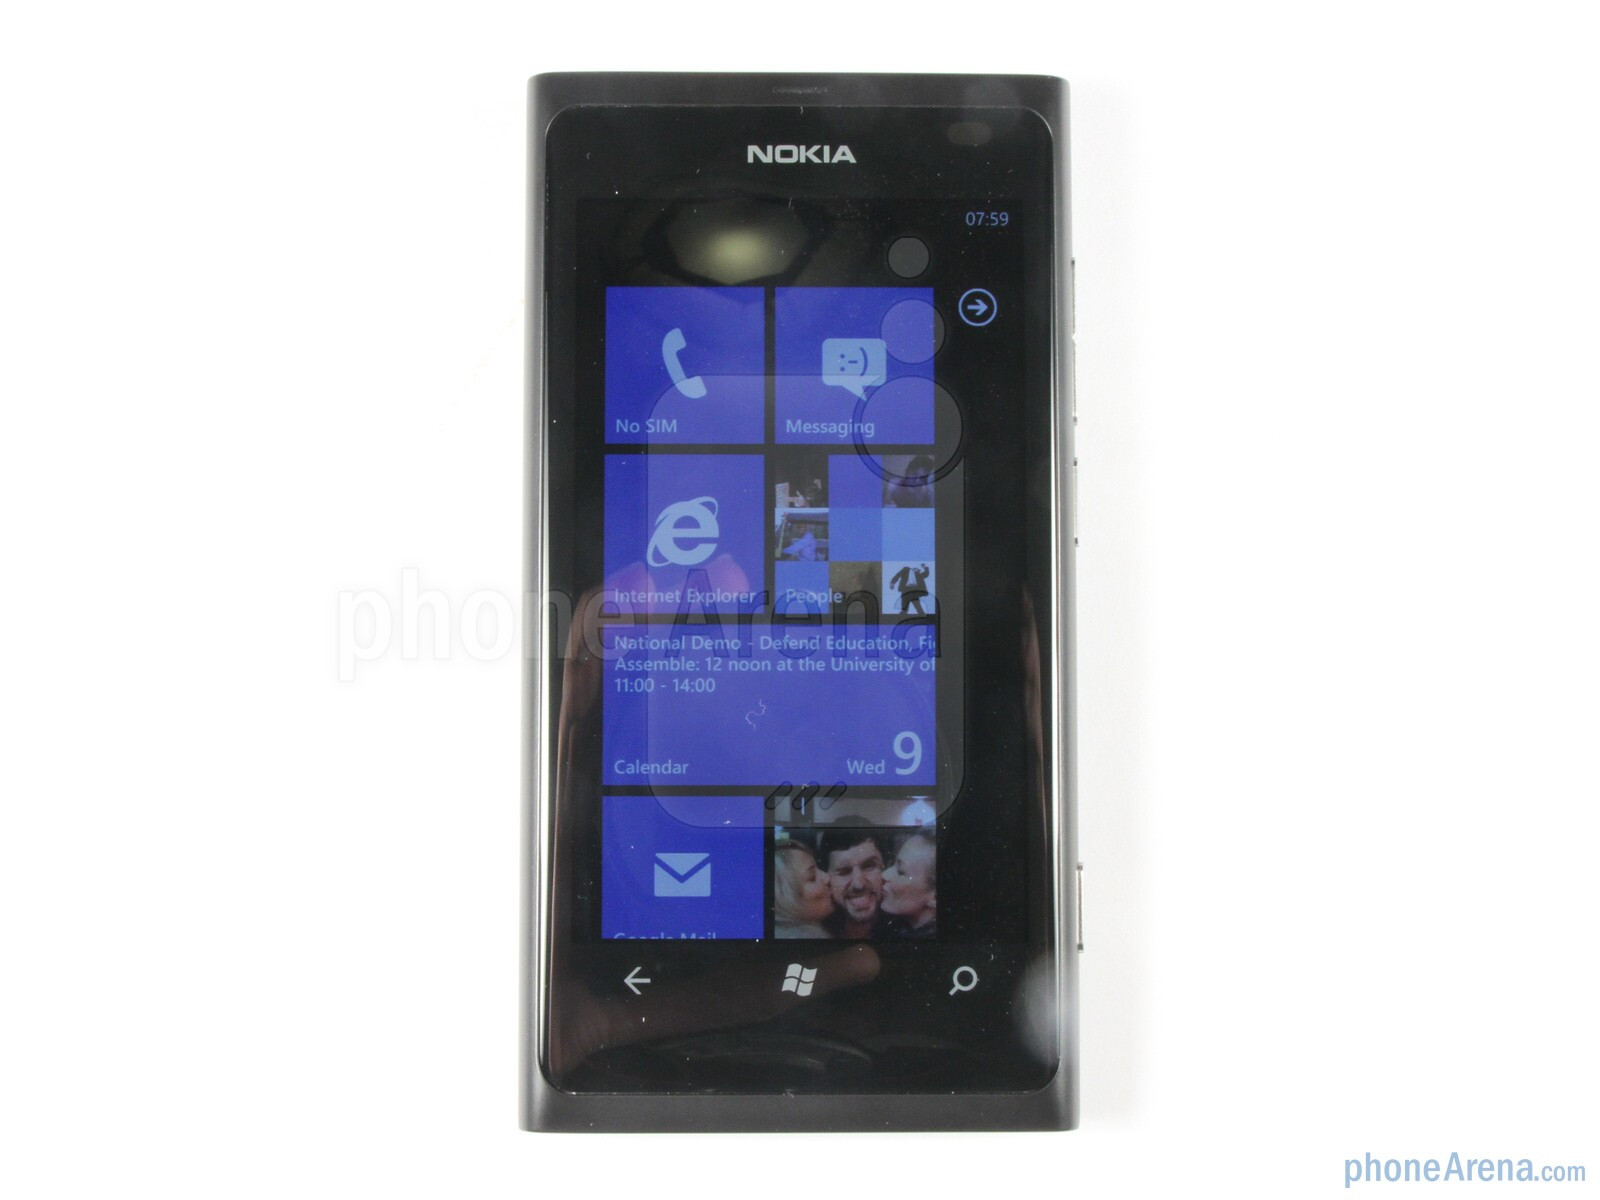 Nokia Lumia 800 Review - Performance and Conclusion